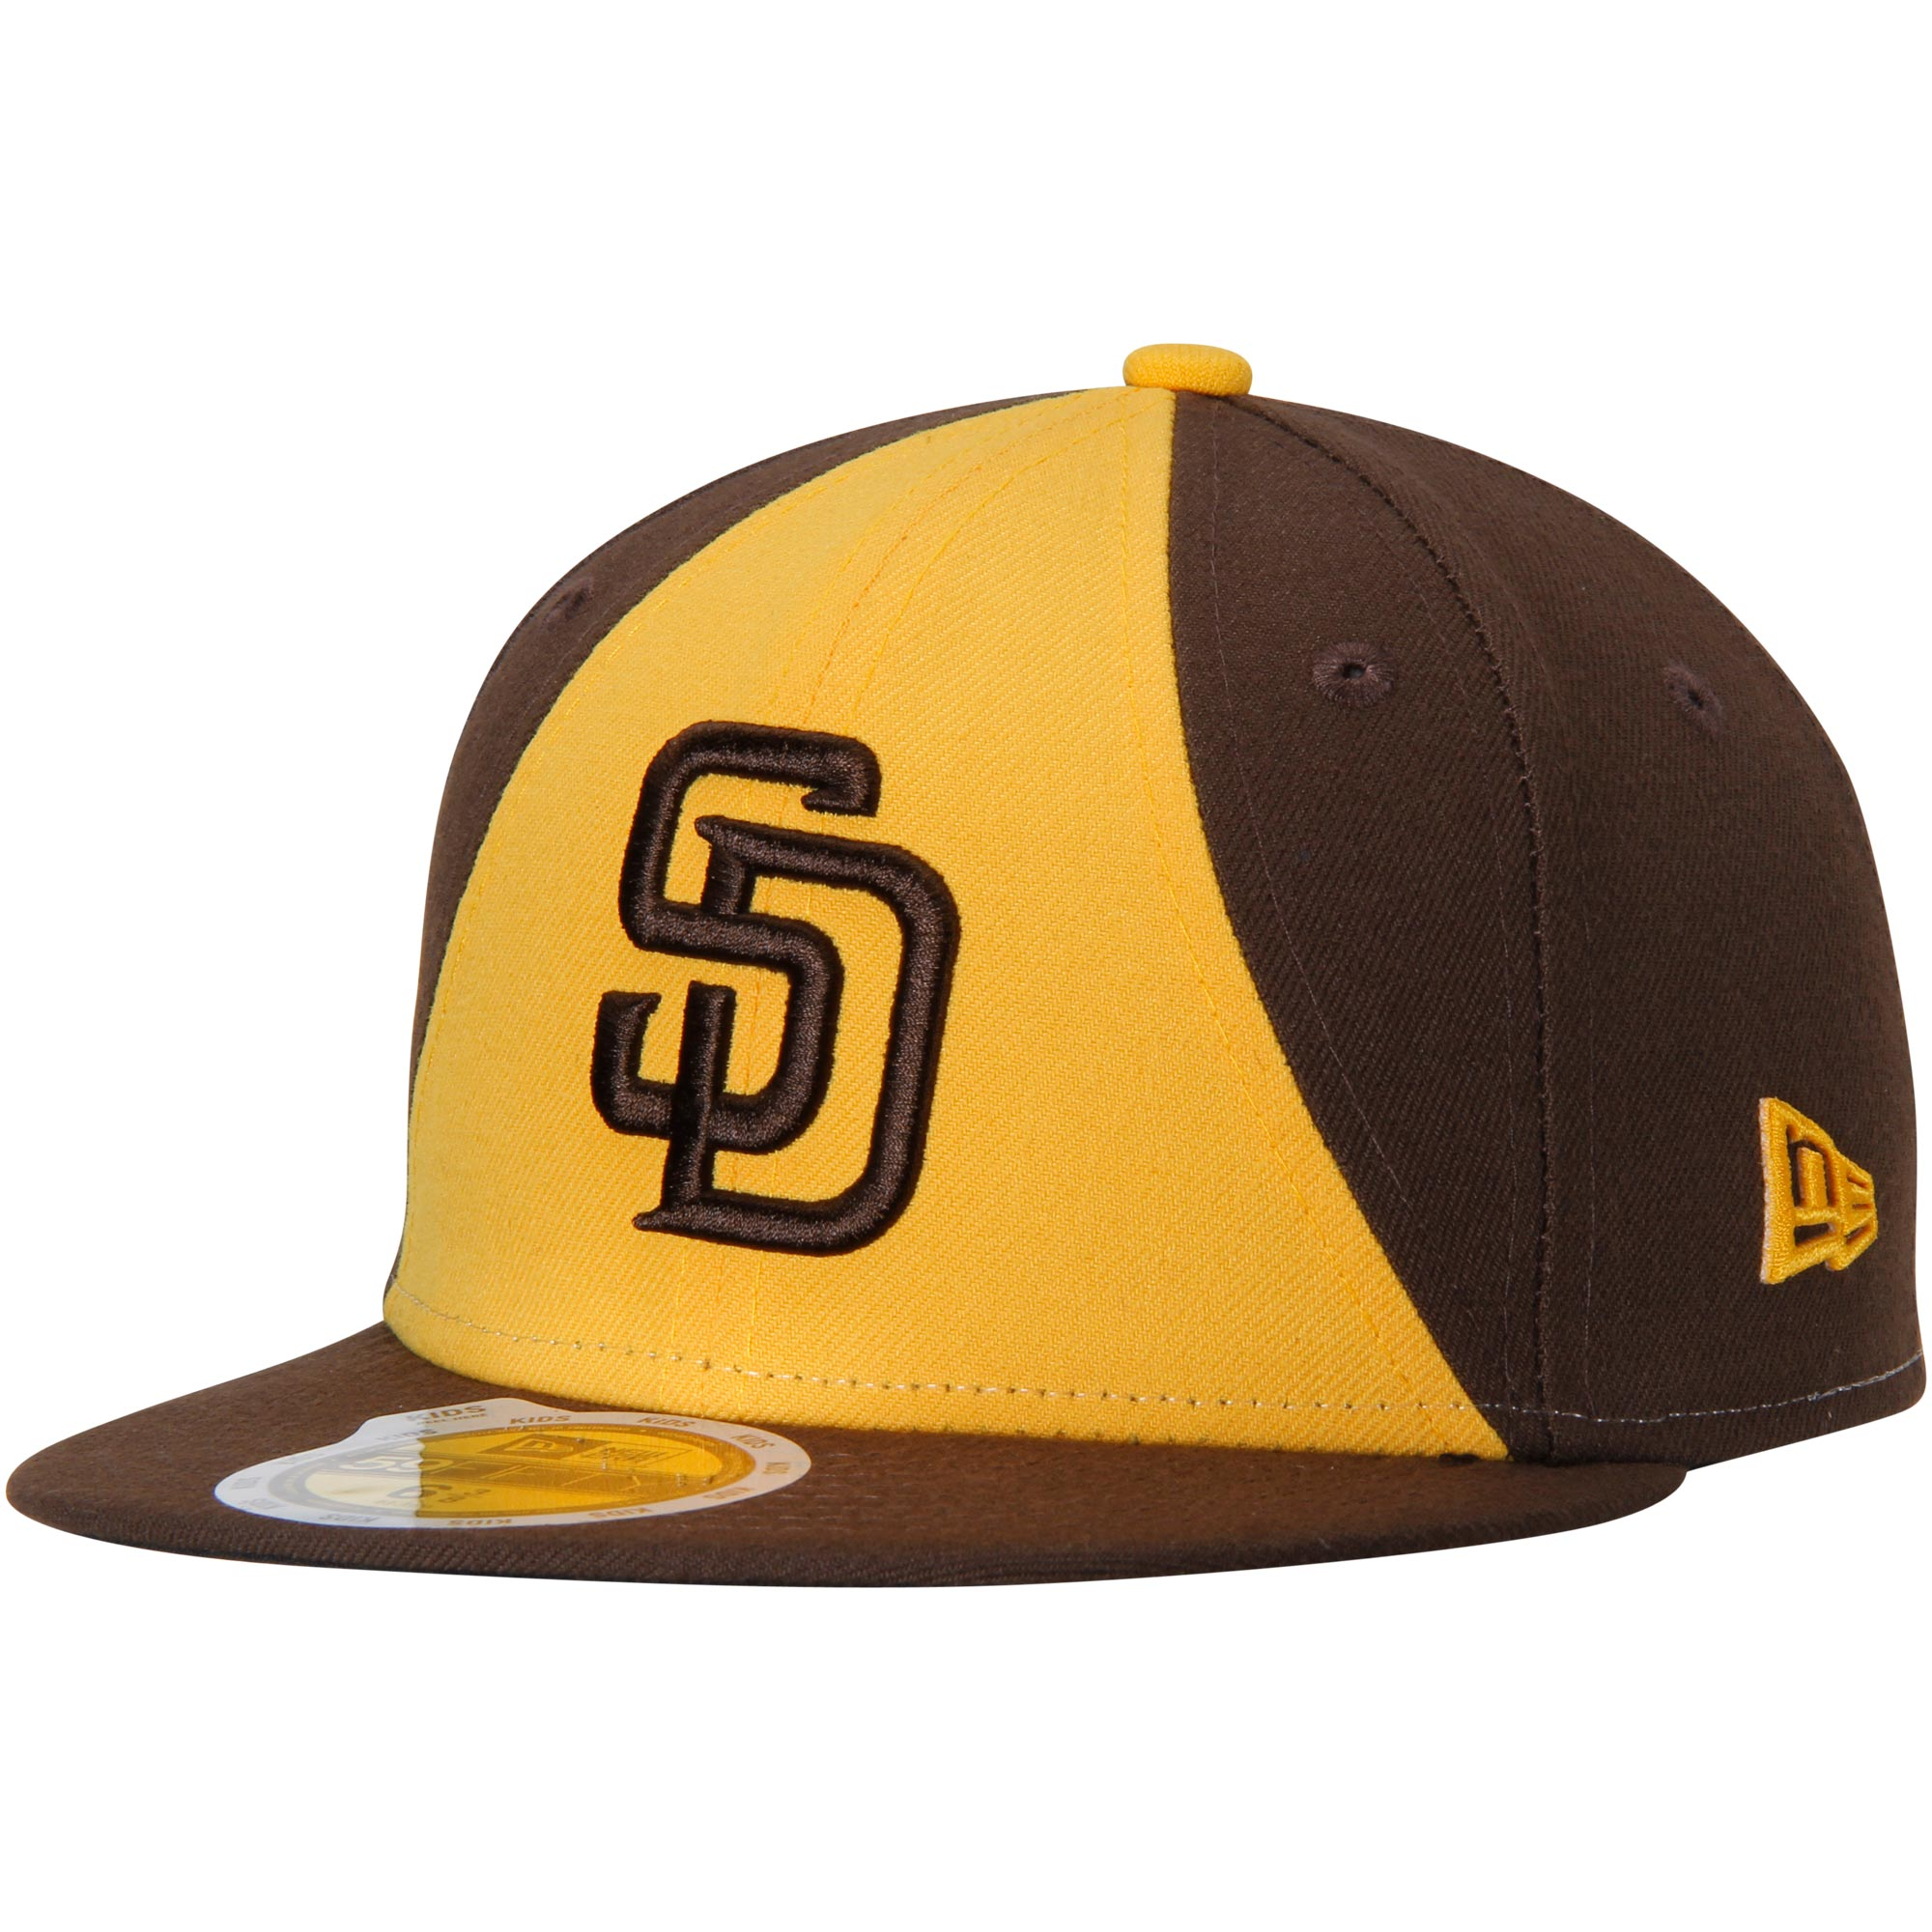 San Diego Padres New Era Youth Authentic Collection On-Field Alternate 2 59FIFTY Fitted Hat - Brown/Gold